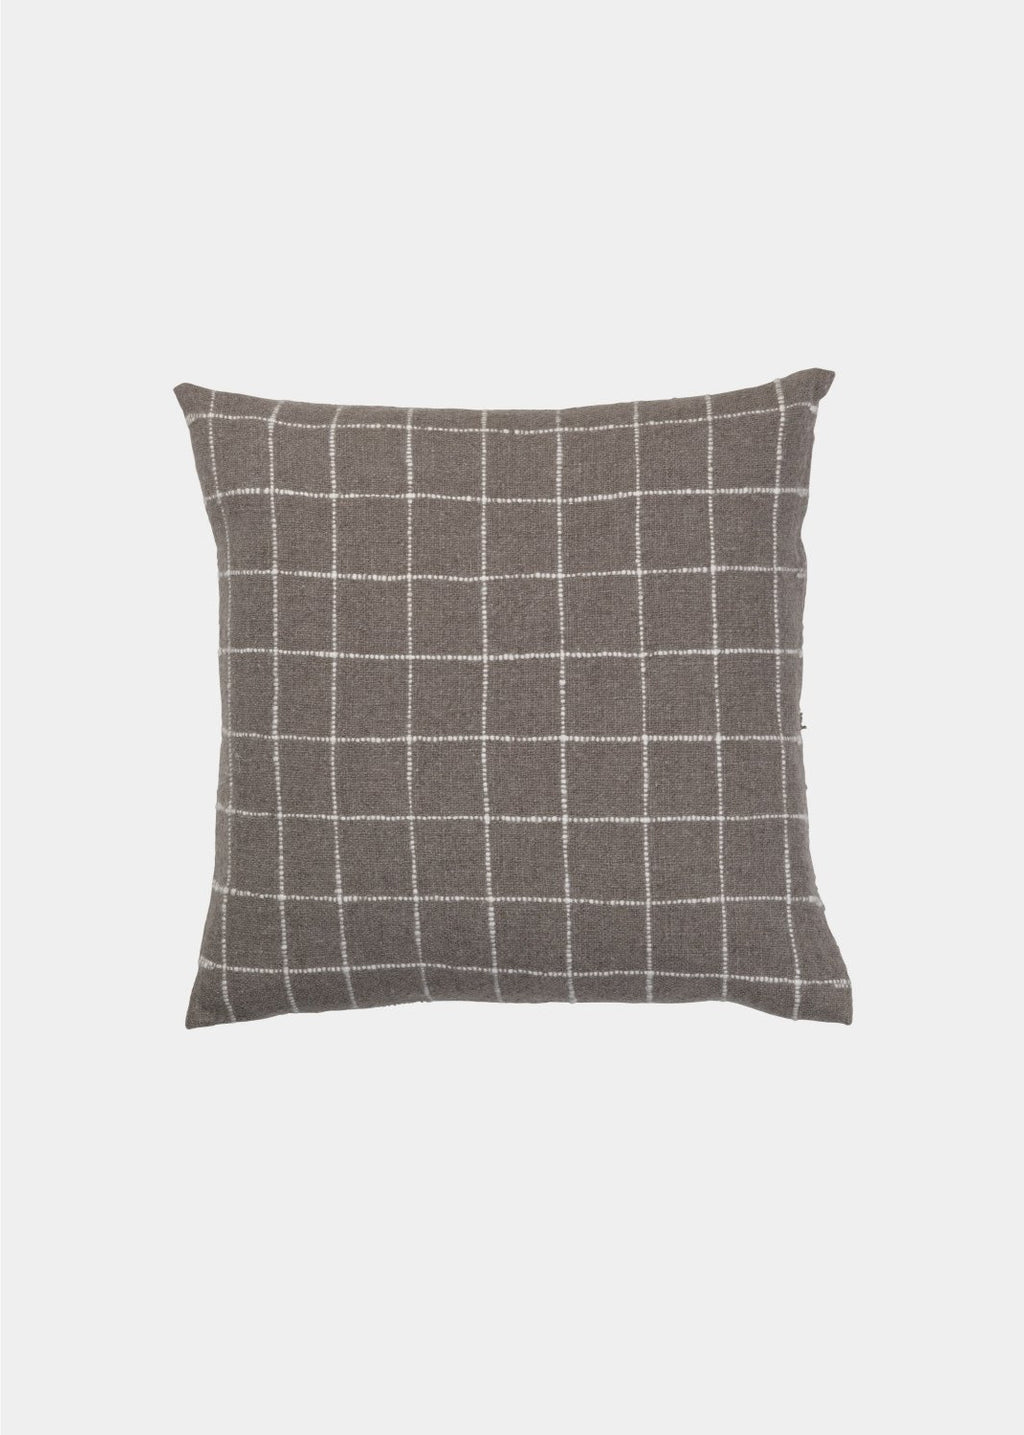 square grey pillows with thing white checkered pattern by designer aiayu